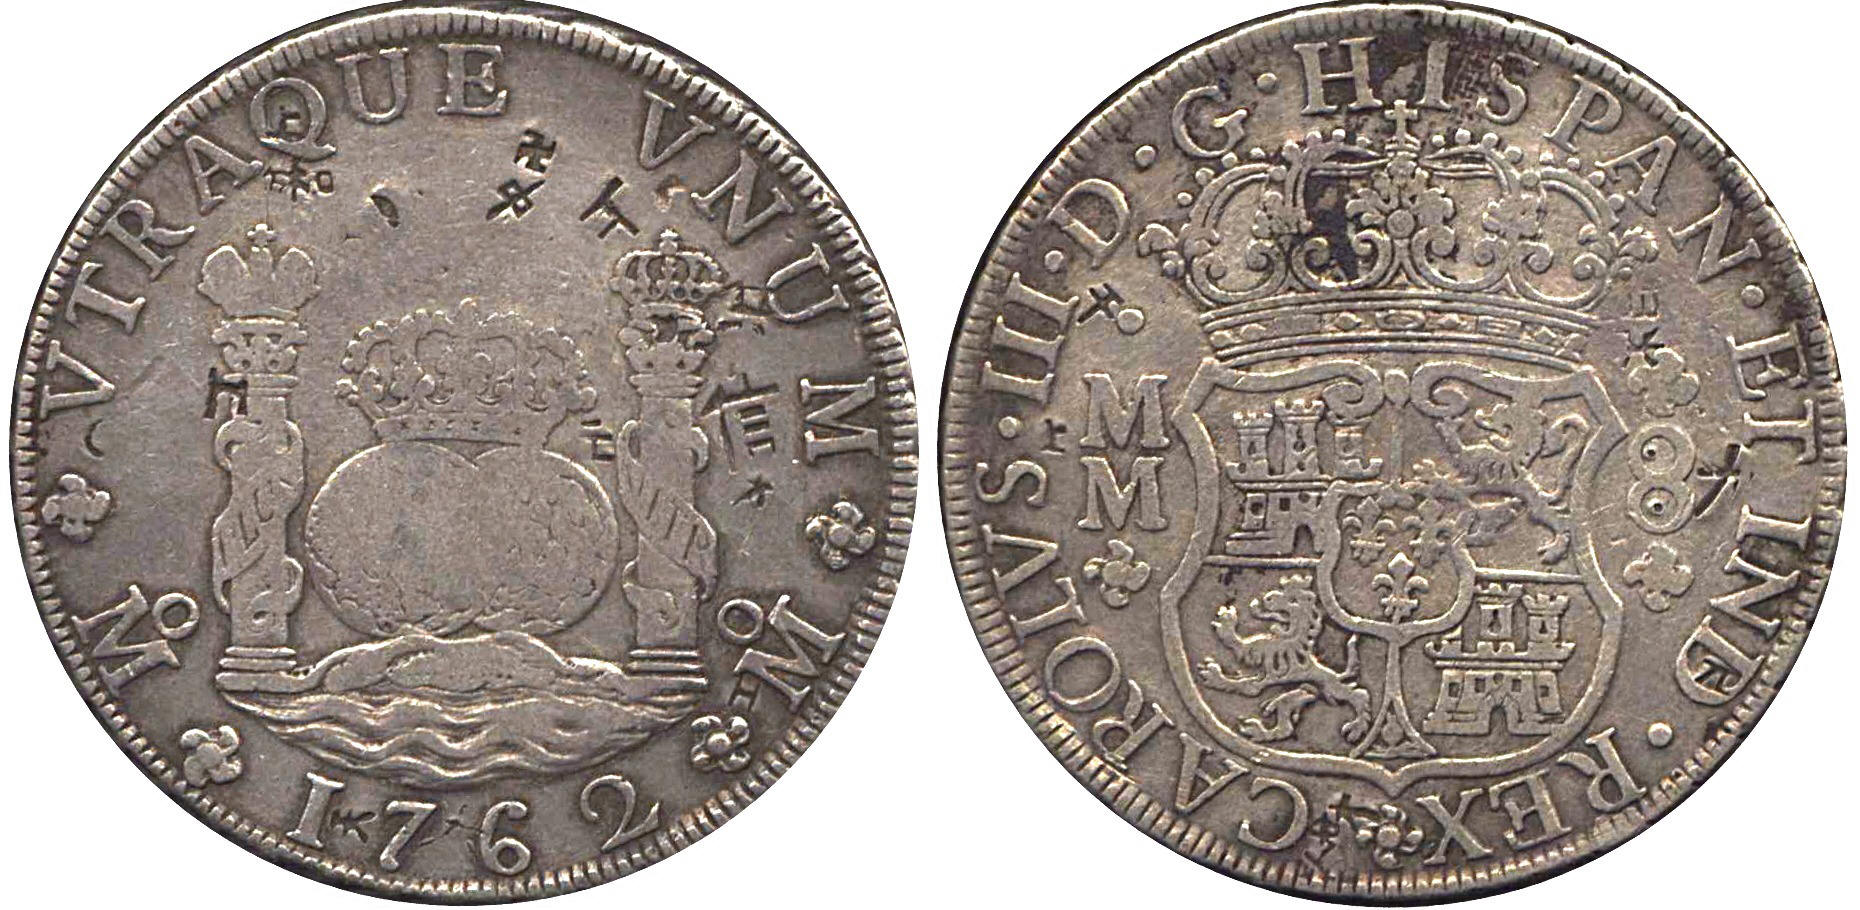 Earnest 1807 Th Mexico 8 Reale Chopd Bust King Charles Iv U.s First Silver World Coin Coins & Paper Money